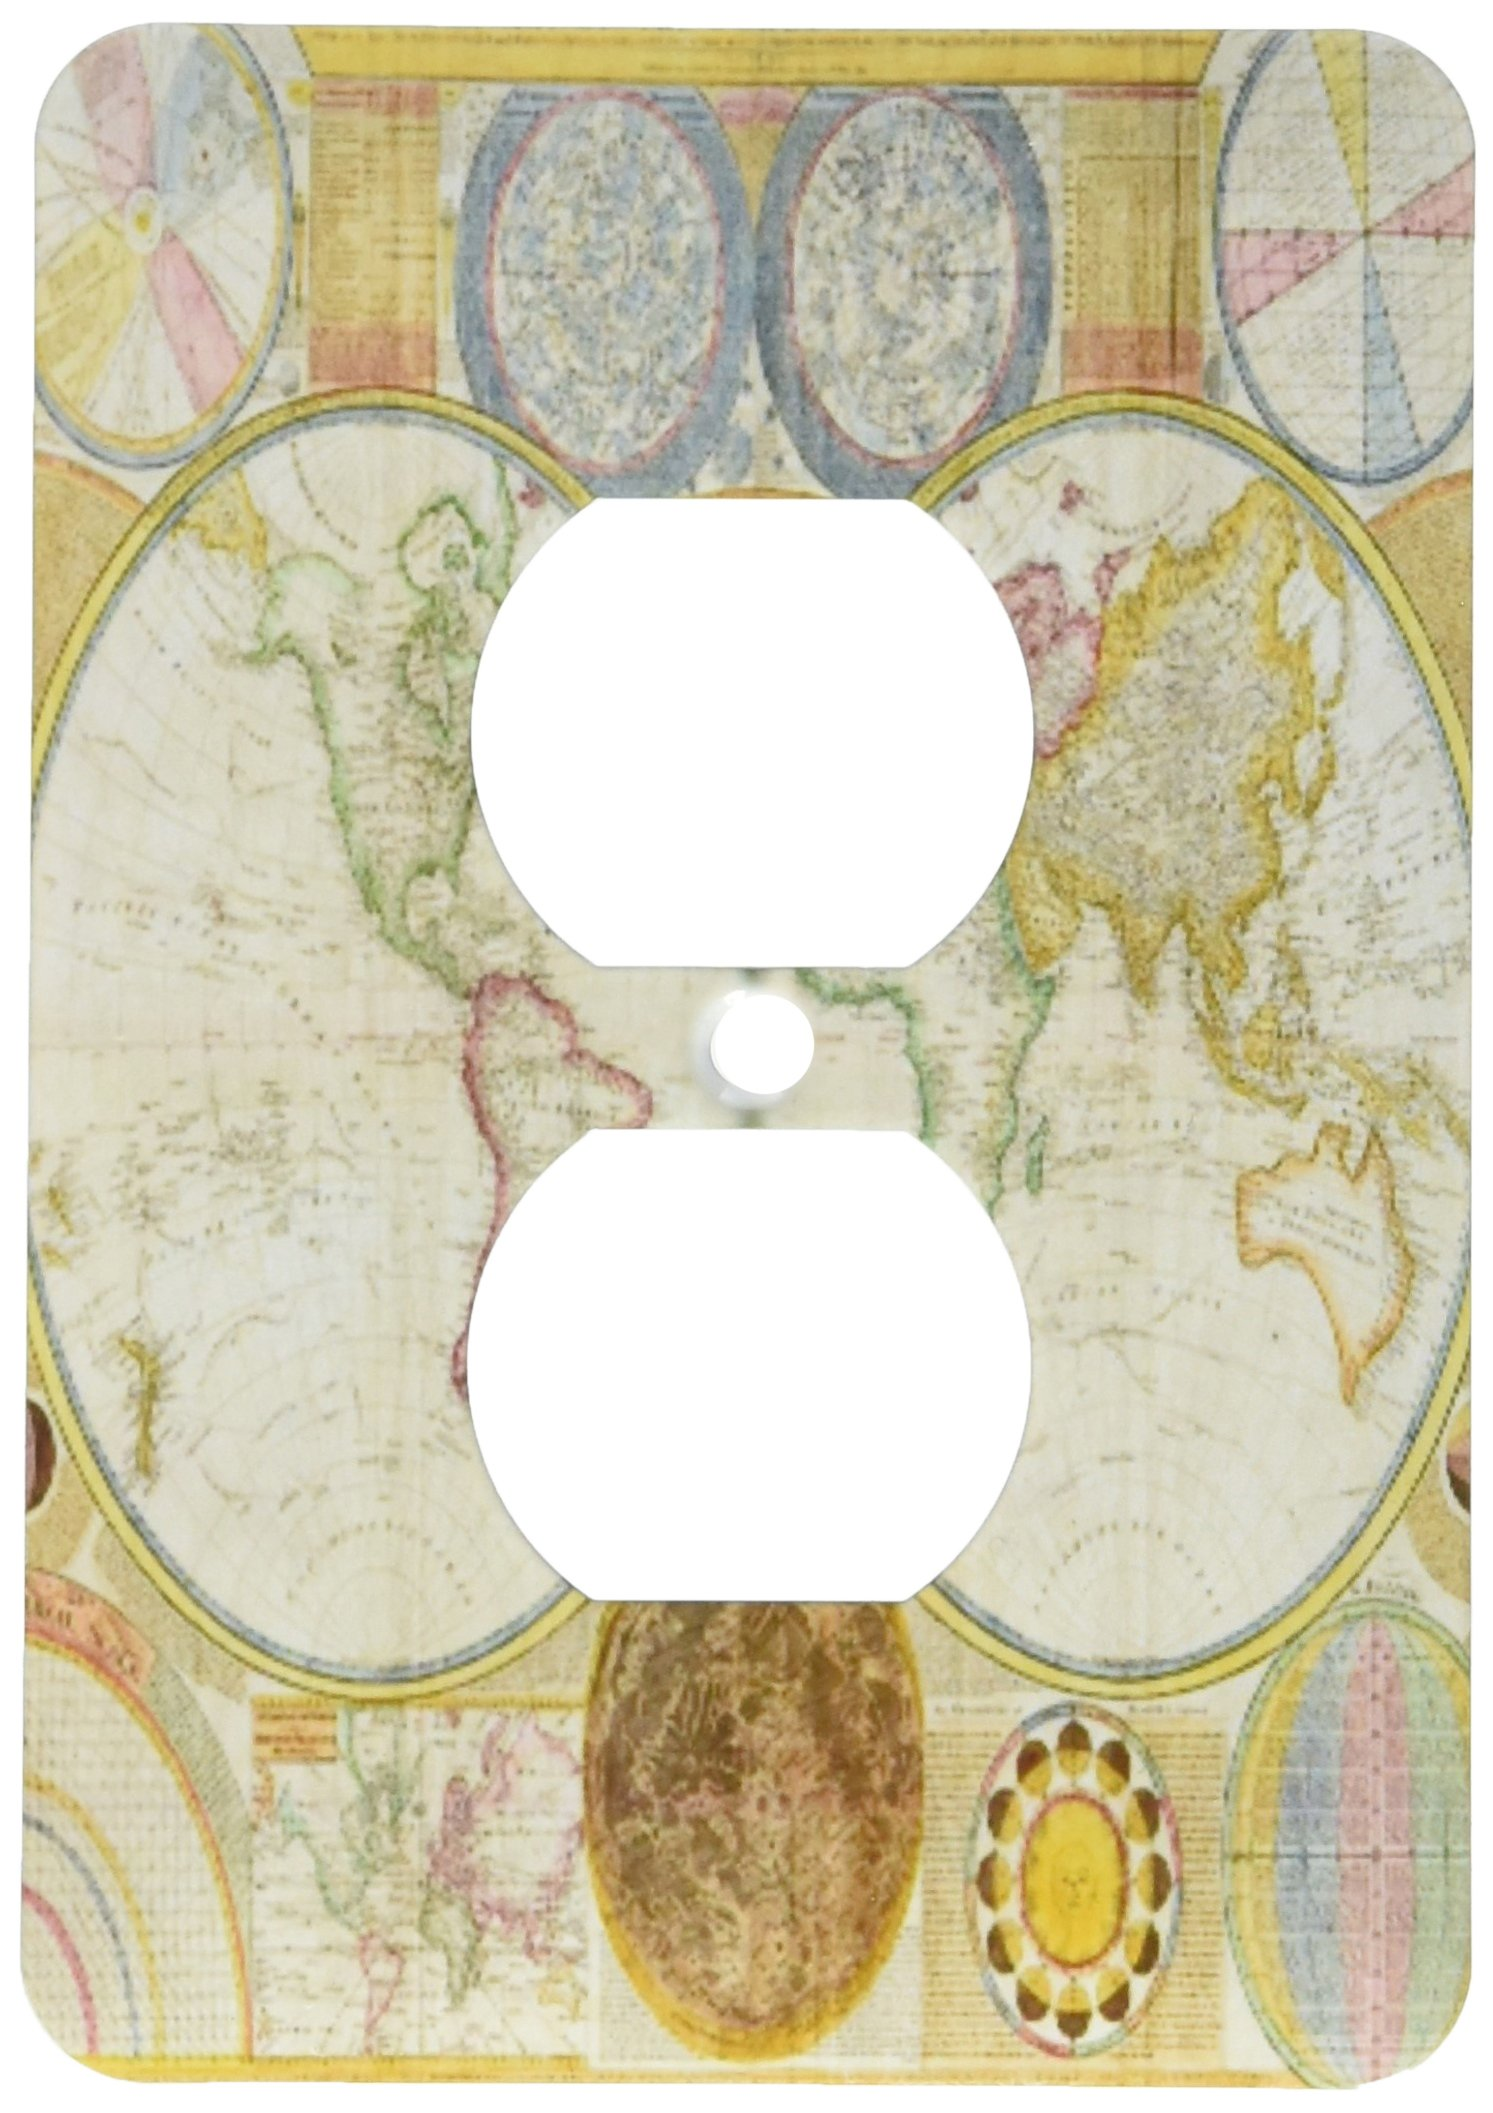 3dRose lsp_171761_6 Image Of First Map Of Hemisphere And Solar System - 2 Plug Outlet Cover